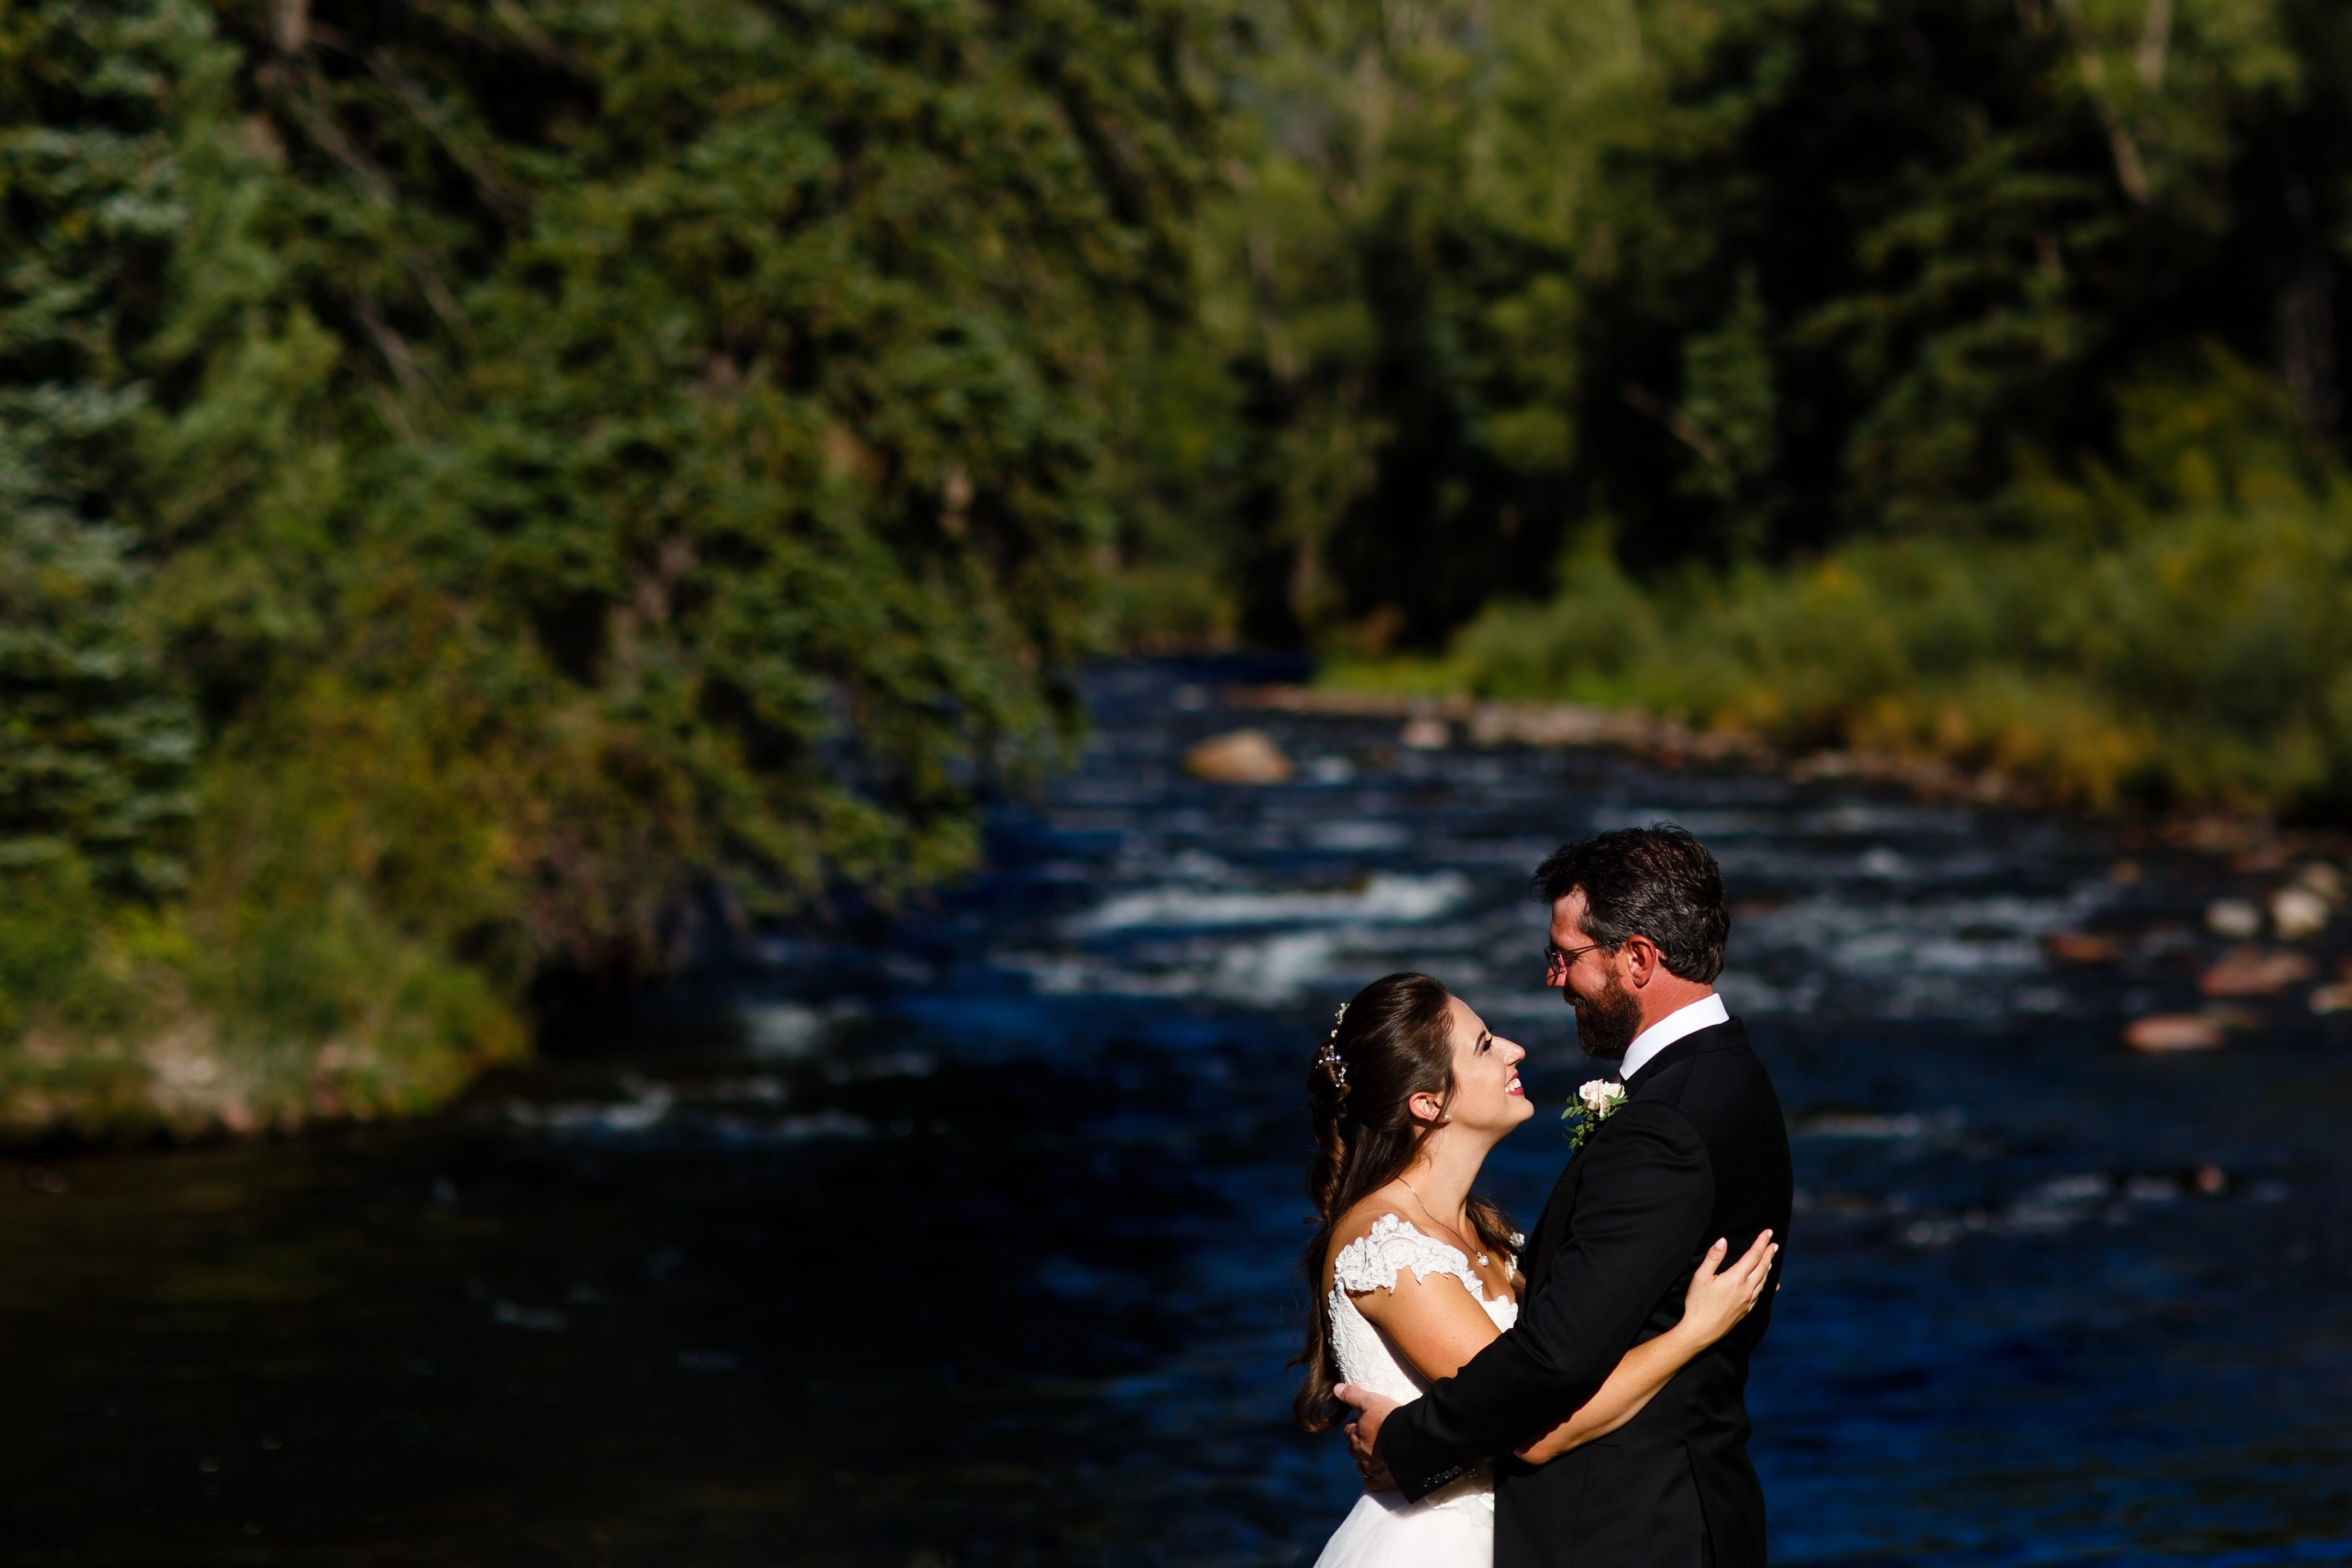 Mallory and Daniel embrace in front of the river at Snowmass Cottages during their wedding